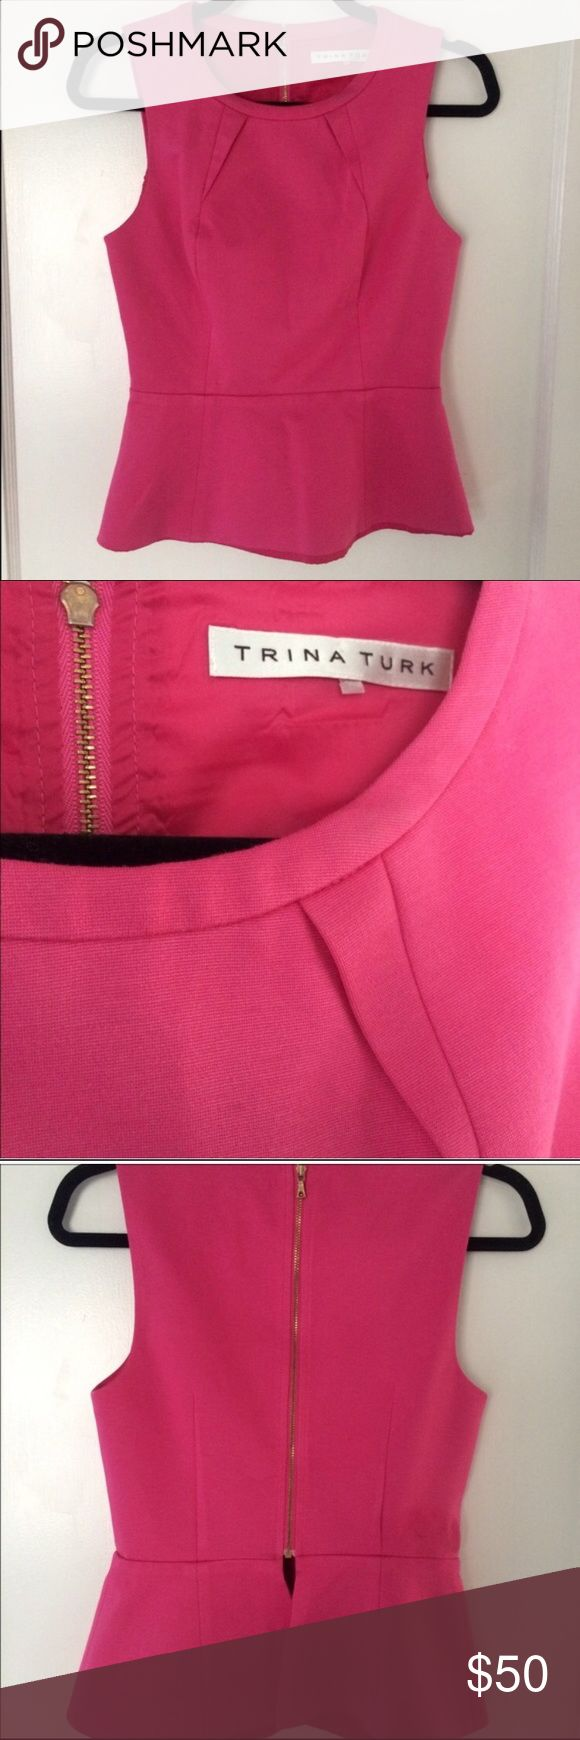 Hot Pink Trina Turk Peplum Top Hot pink Trina Turk Peplum style top with gold zipper! This is a repay. It was too small for me. Probably fits a 00, 0, or 2. The fourth photo shows two barely noticeable spots. Other than that, it's in great condition! Trina Turk Tops Blouses